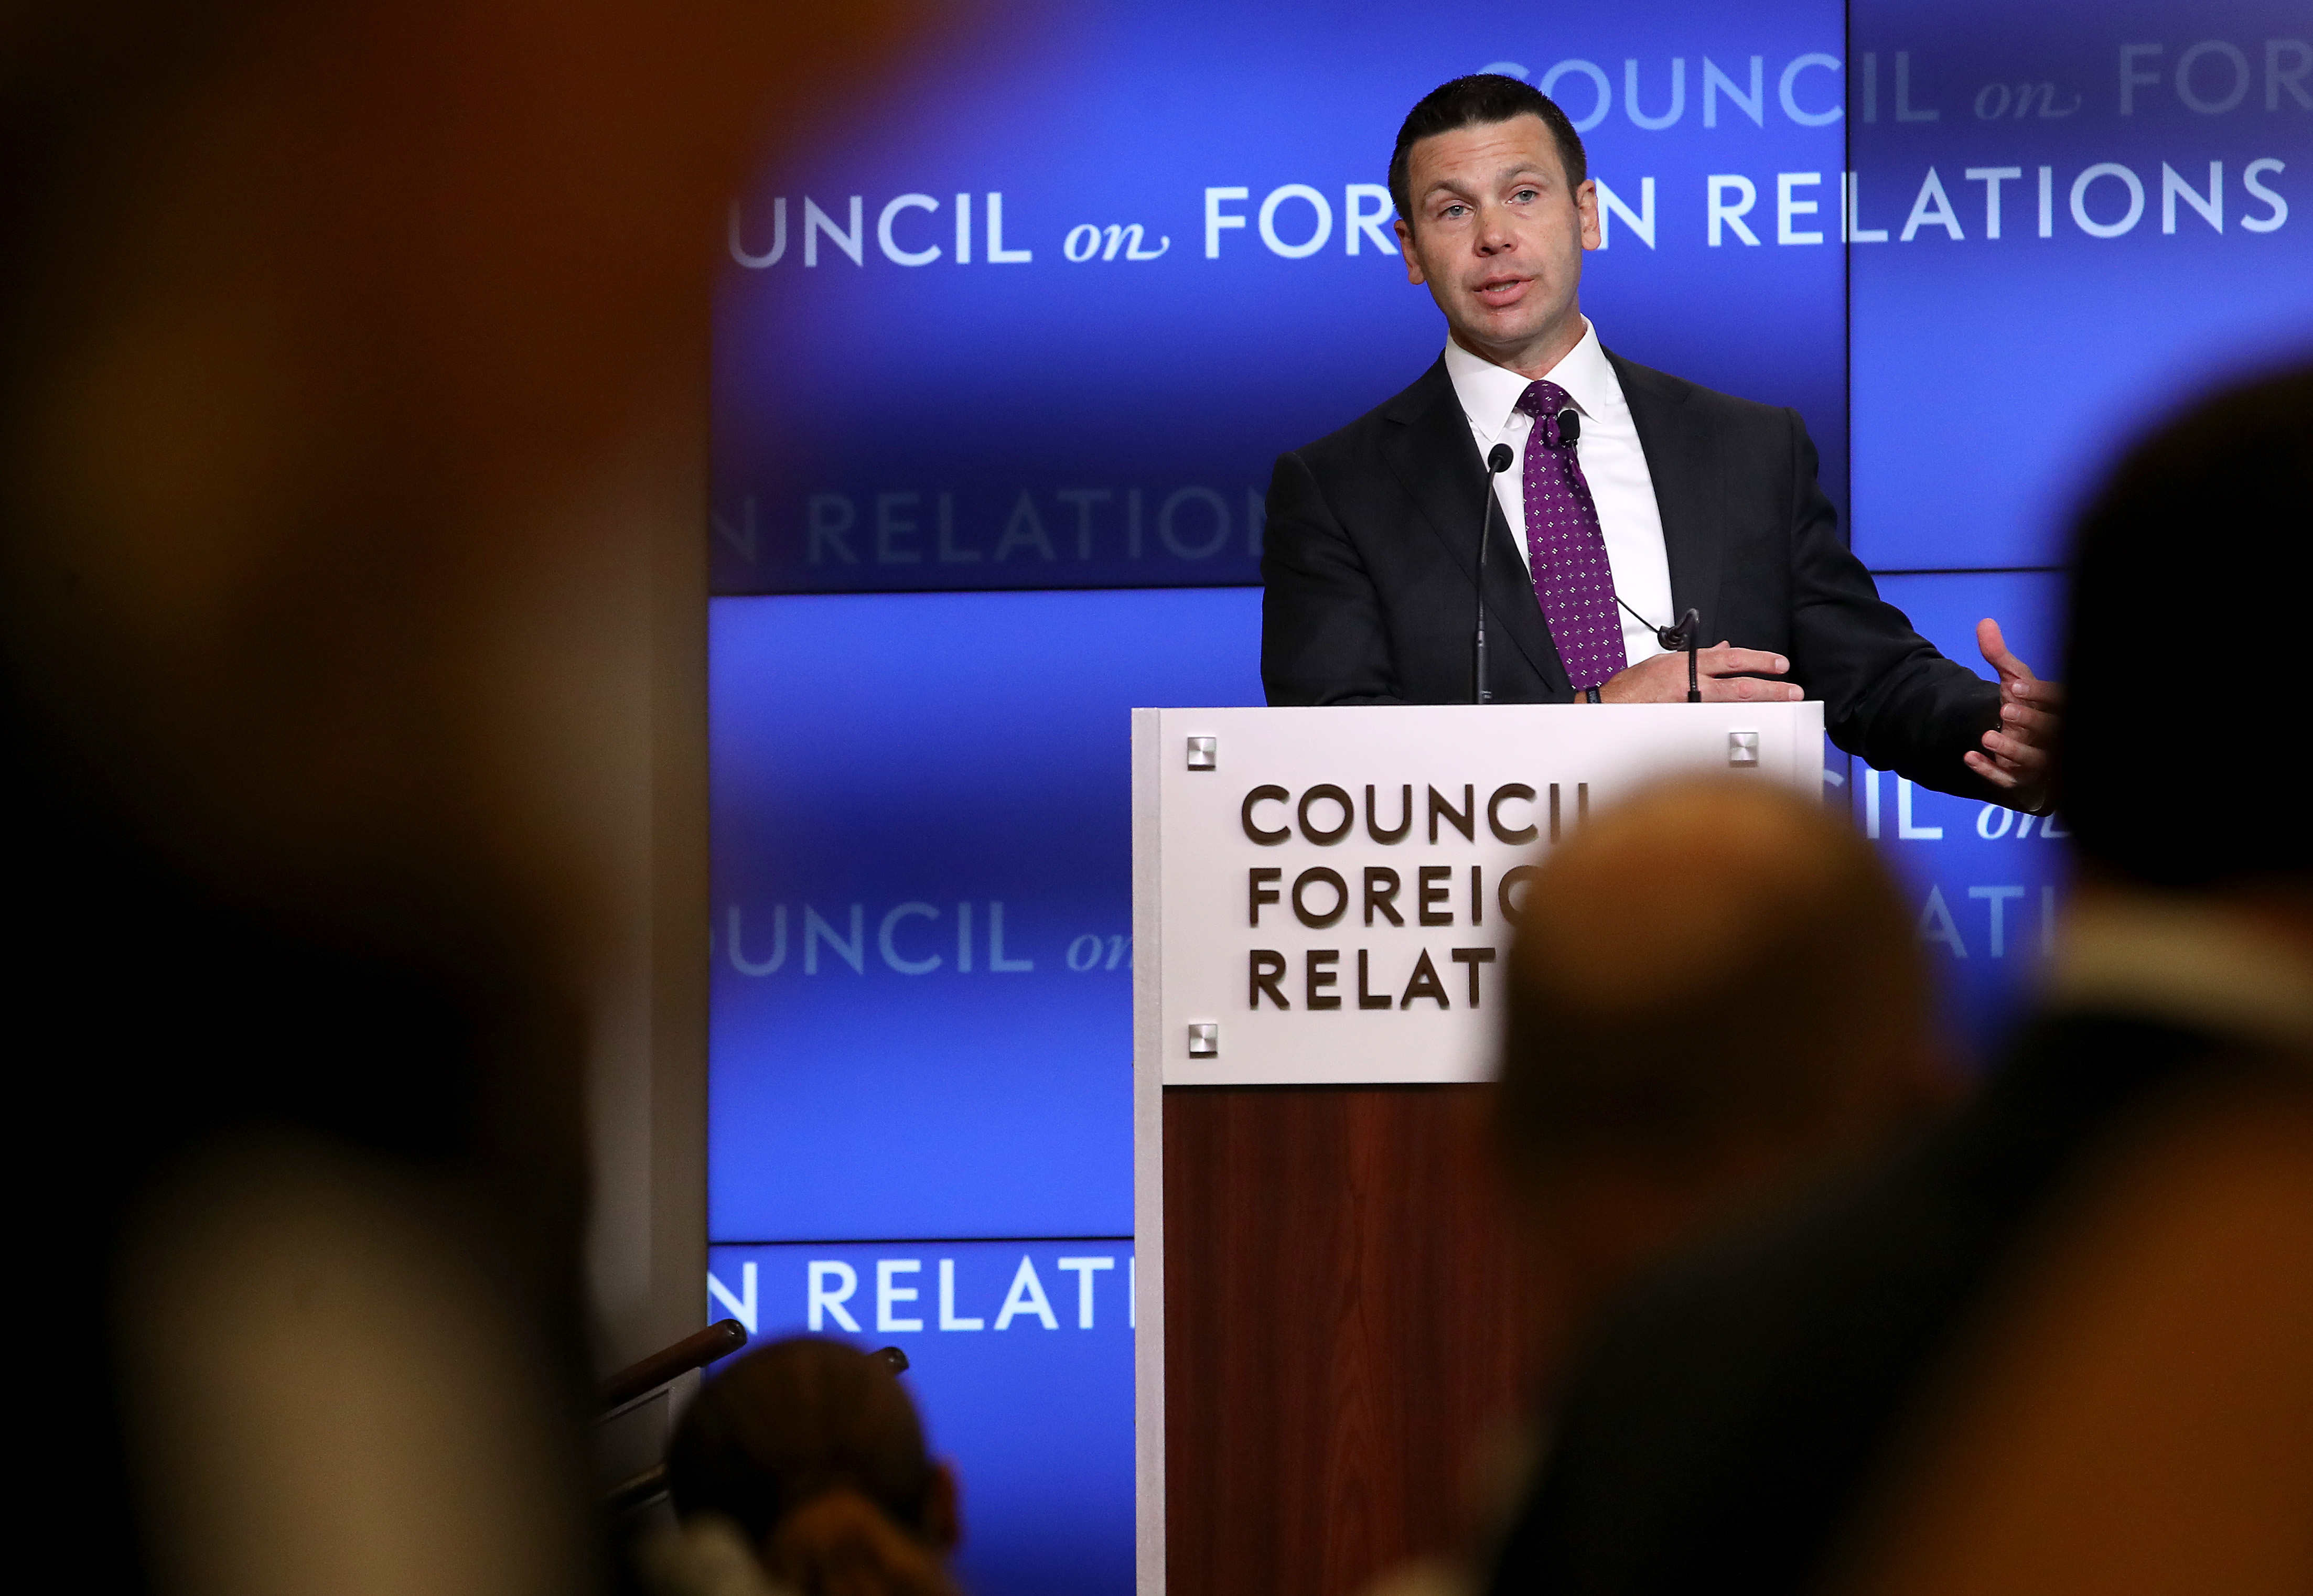 Acting Homeland Security Secretary Kevin McAleenan speaking from a podium at the Council on Foreign Relations.